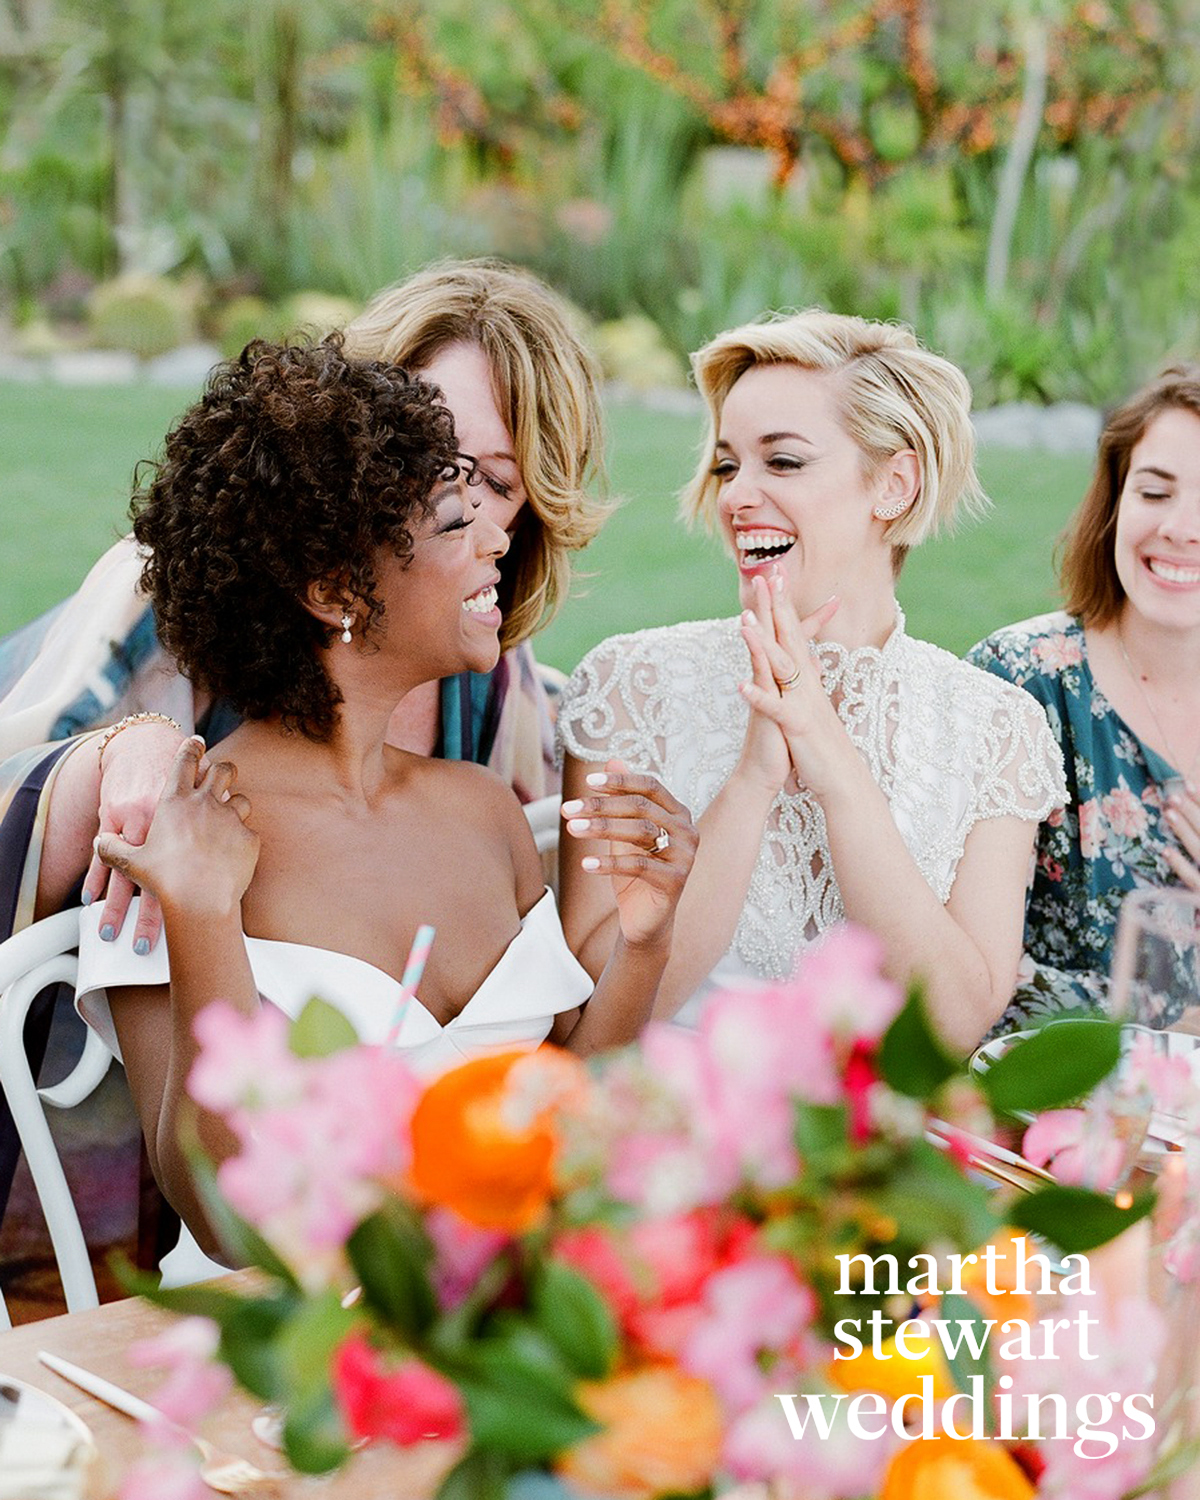 samira wiley lauren morelli wedding mom